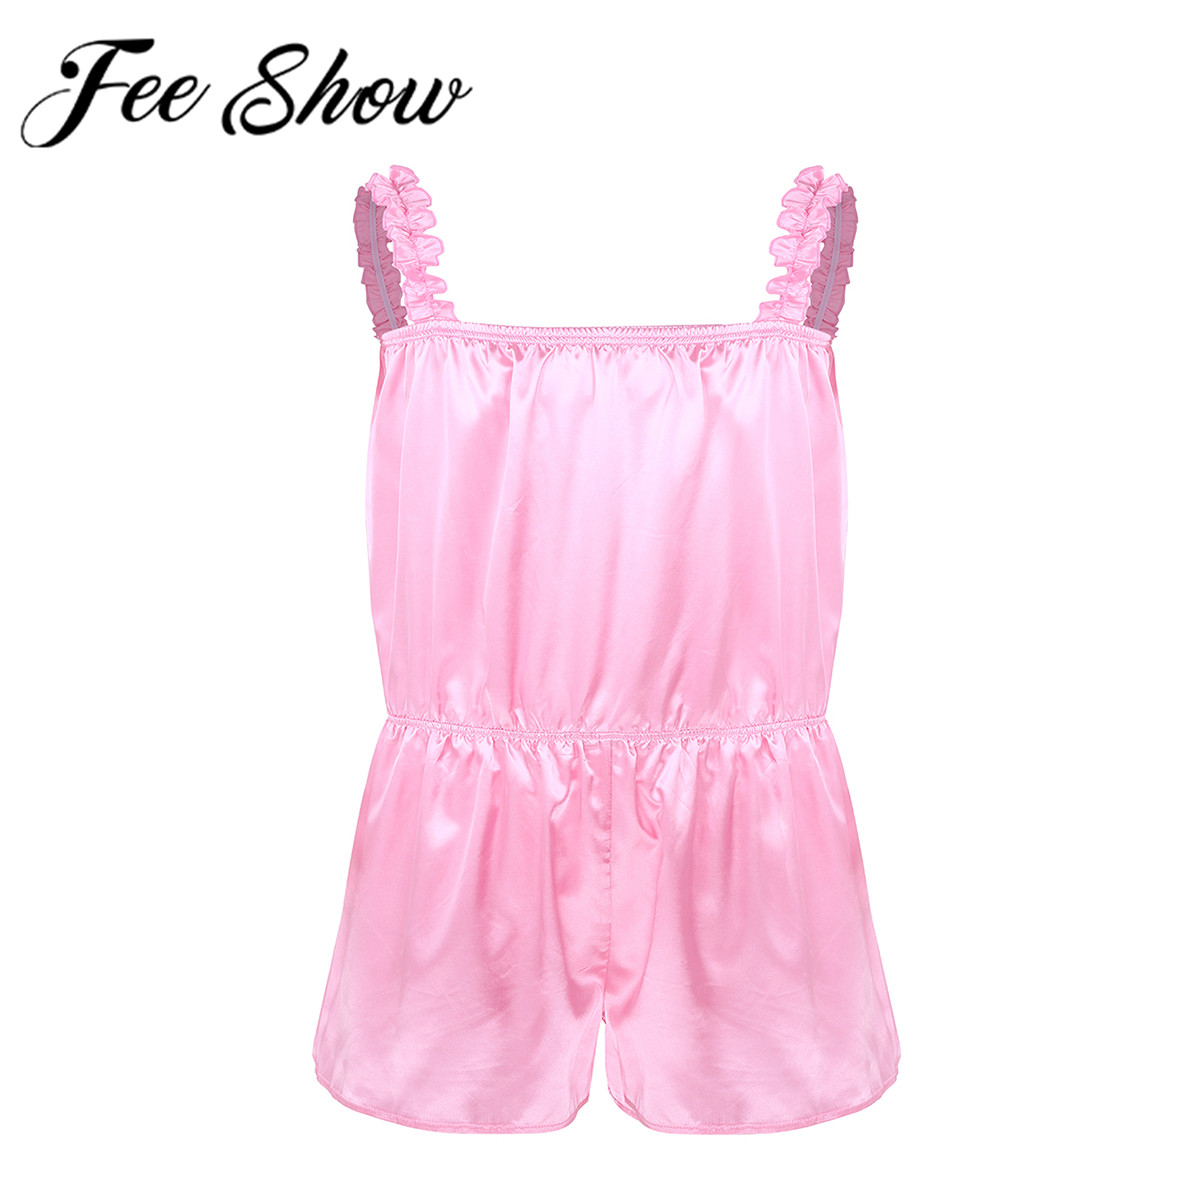 <font><b>Men</b></font> Hot Erotic Sissy <font><b>Lingerie</b></font> Babydolls Buttery Silky Shiny Frilly Satin Crossdress Pants Sleepwear Pajamas <font><b>Sexy</b></font> Male Nightdress image